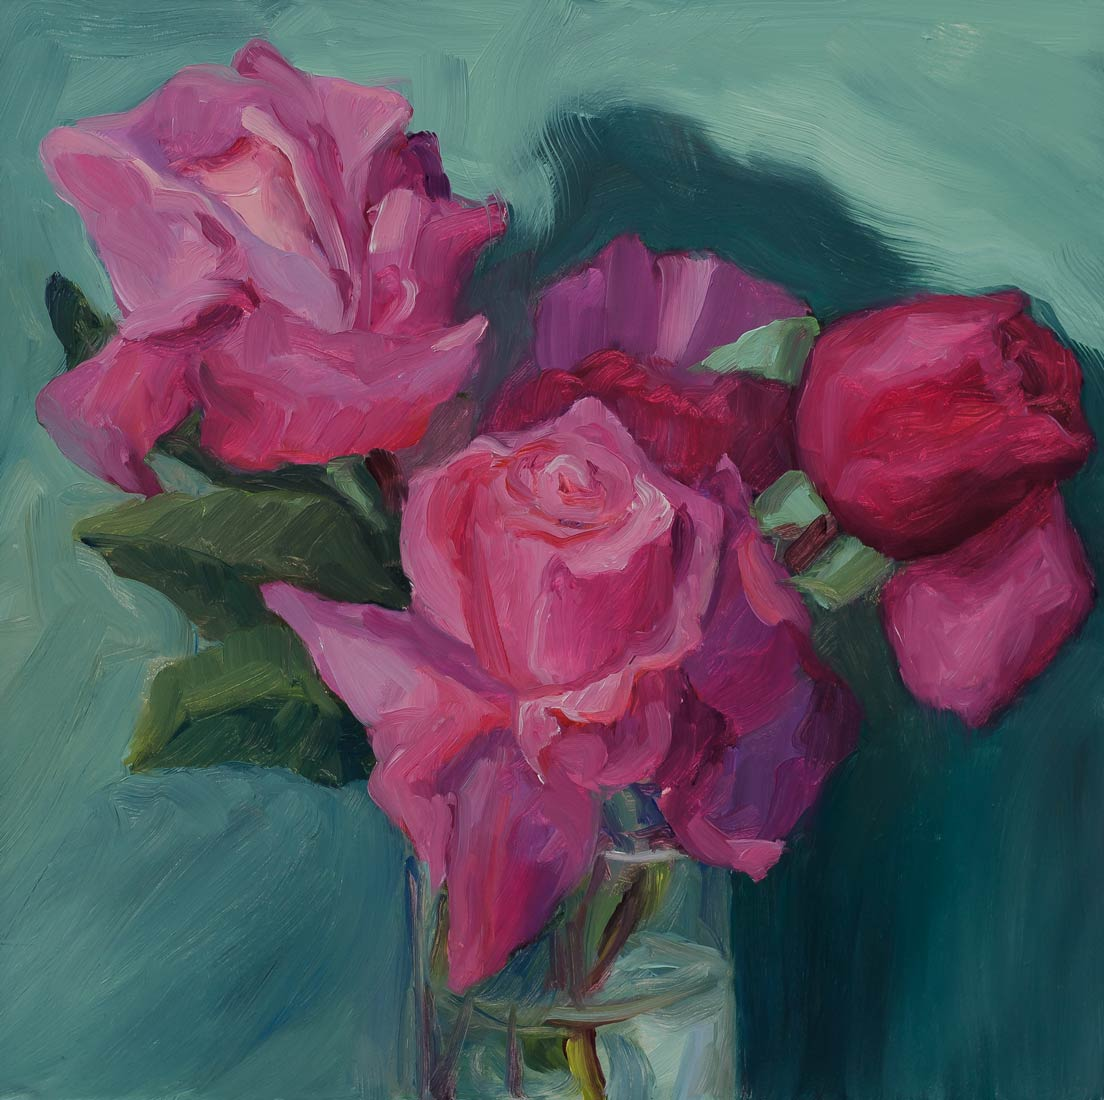 Stolen Roses, oil painting on panel, 8x8""